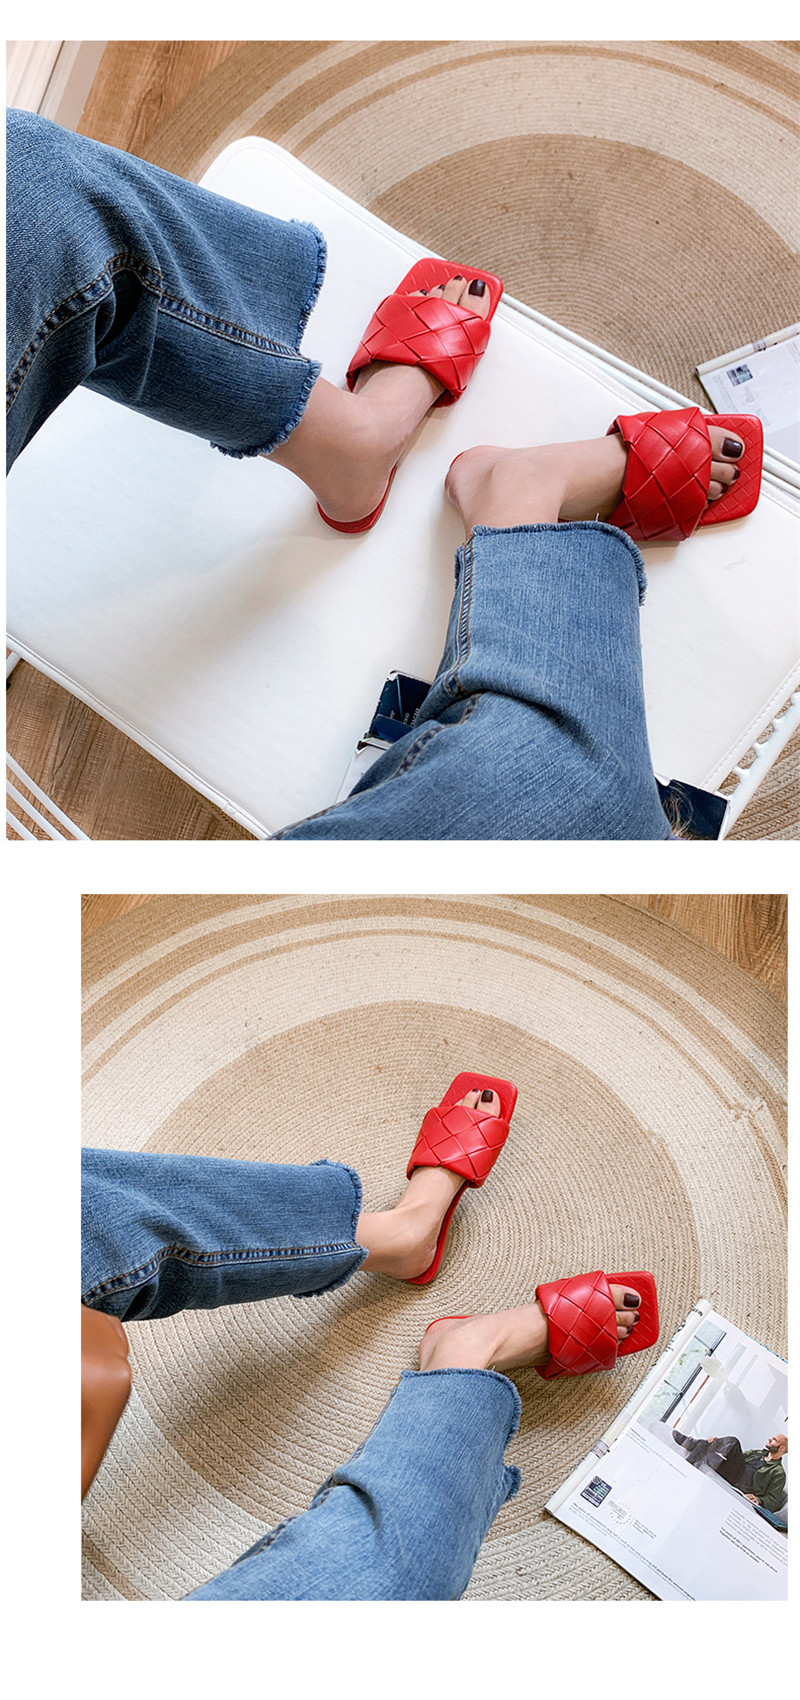 Fashion Woven Slippers Women Open Toe Square Toe Ladies Flat Sandals Outside In Summer Slides Shoes Woman Slippers Large Size 40 (16)